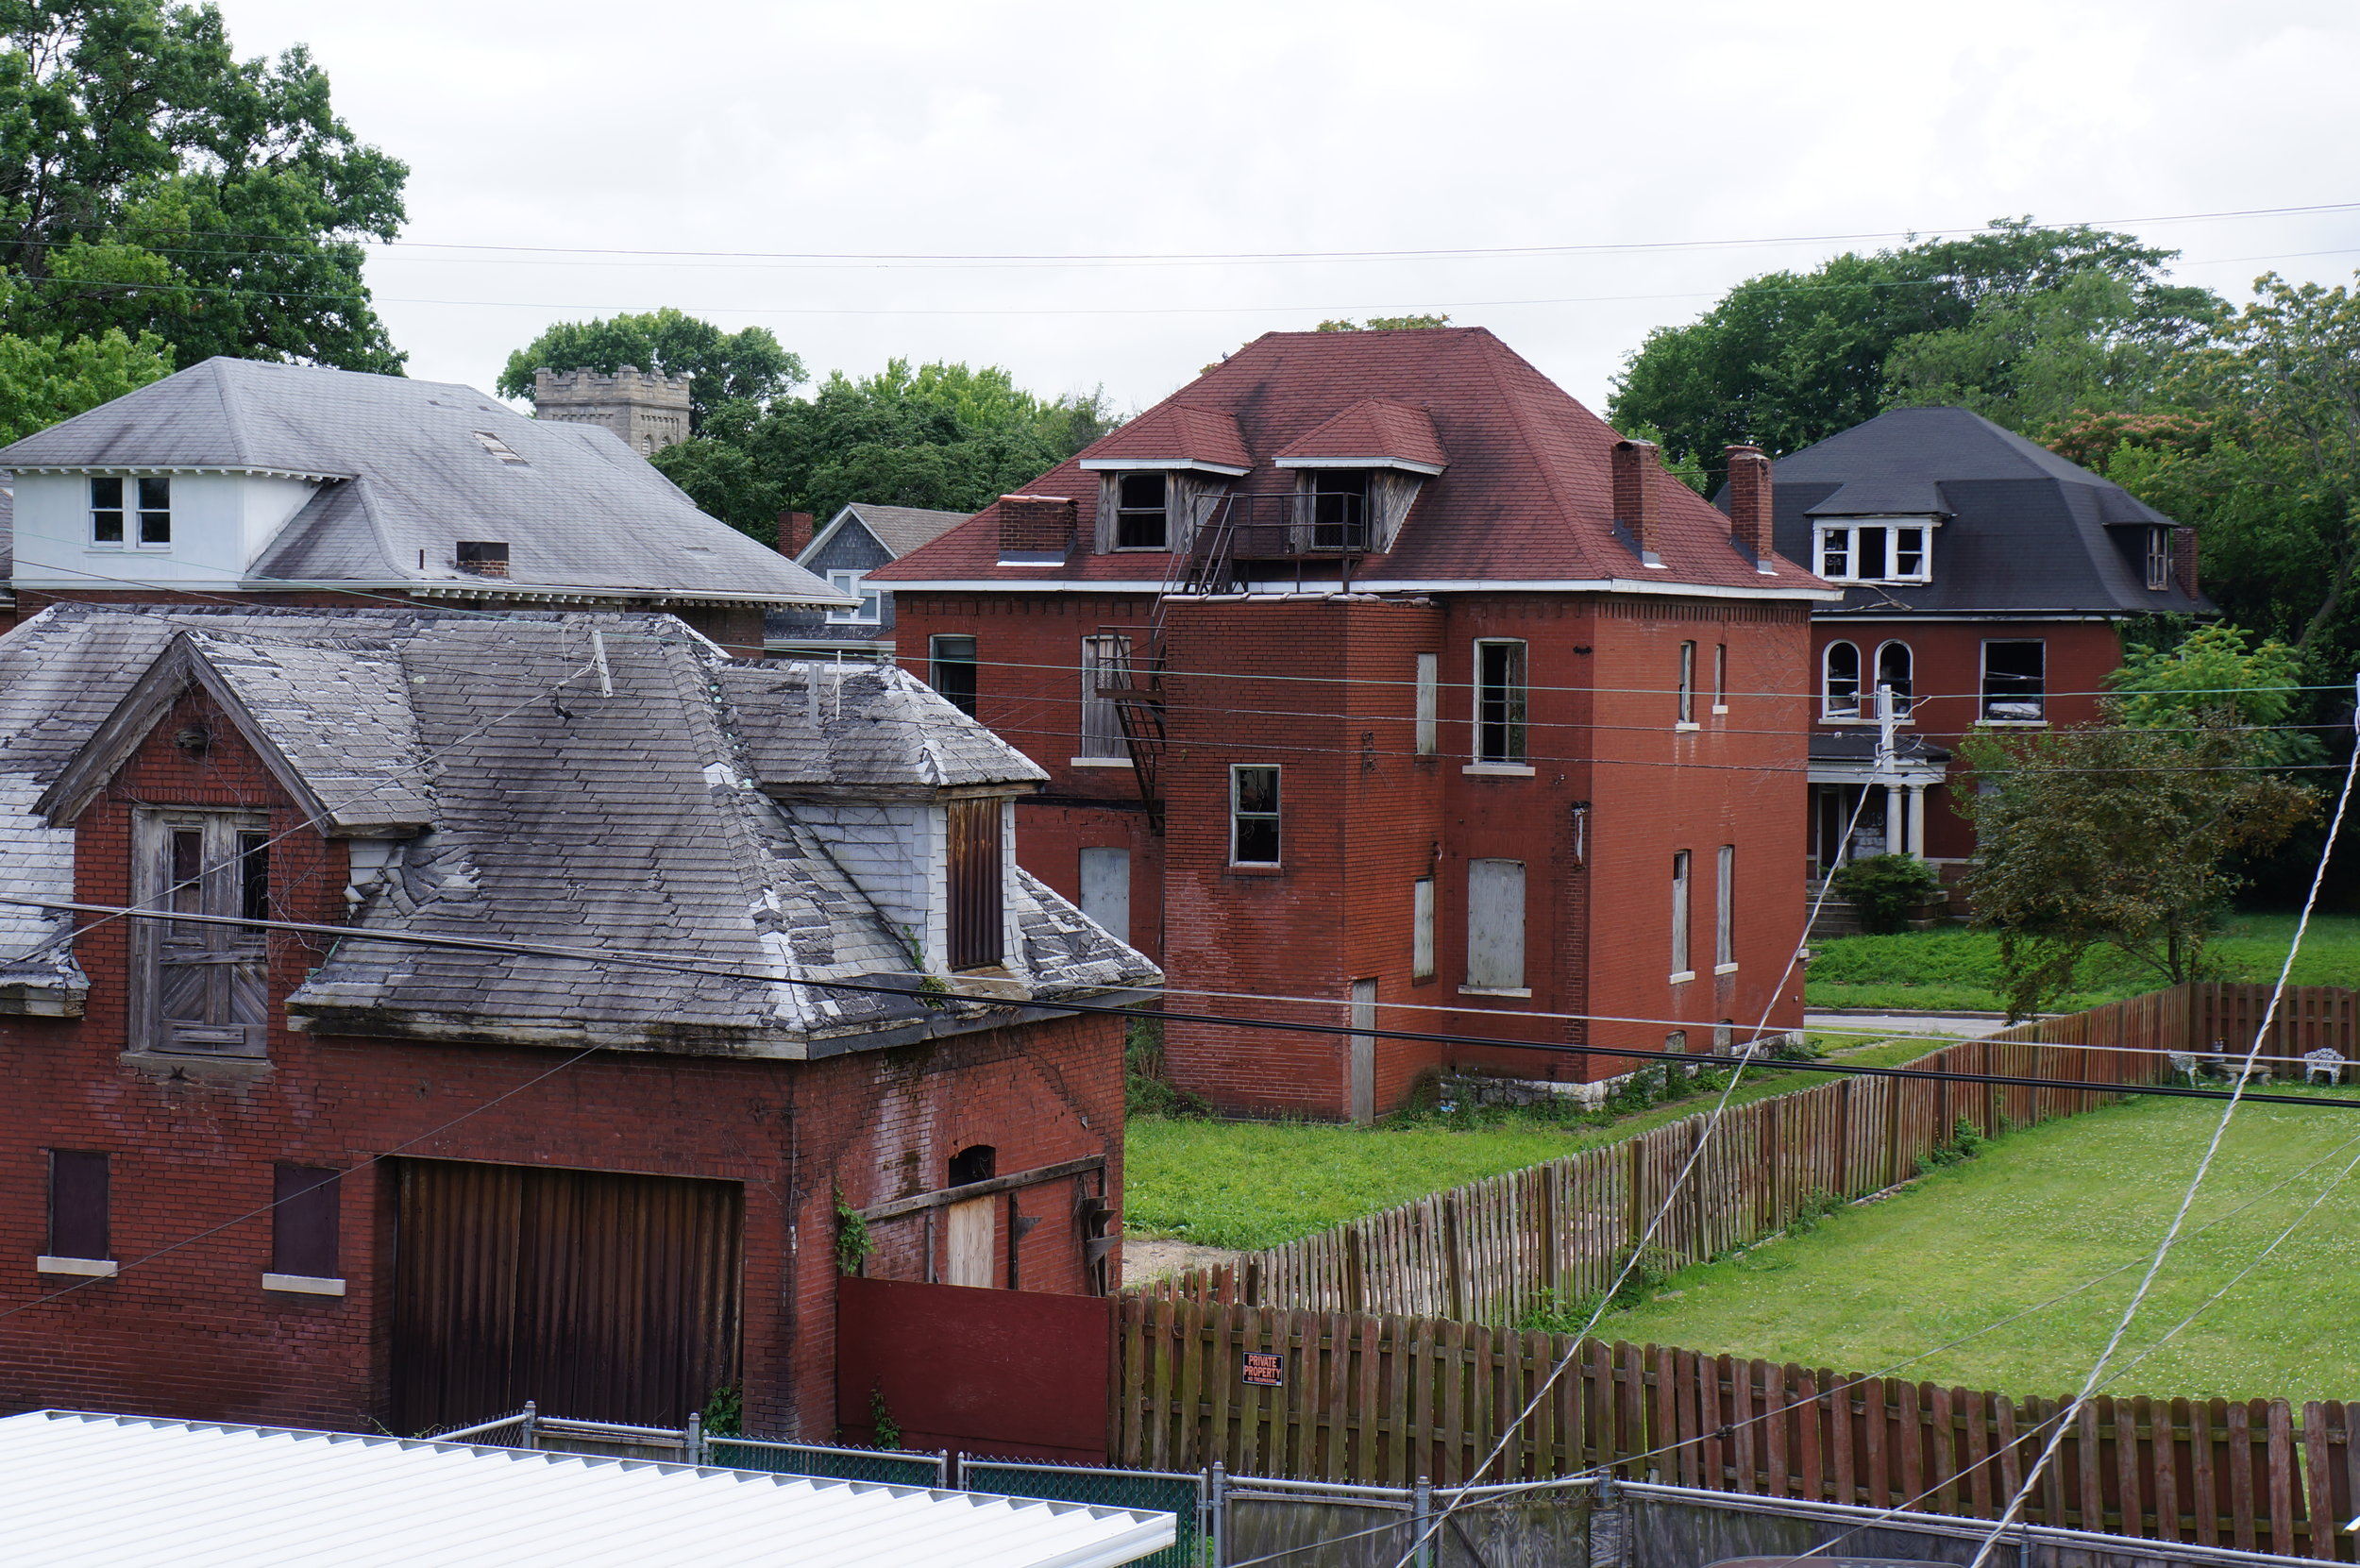 Homes seen from the backyard of the Huntspon's house,2017